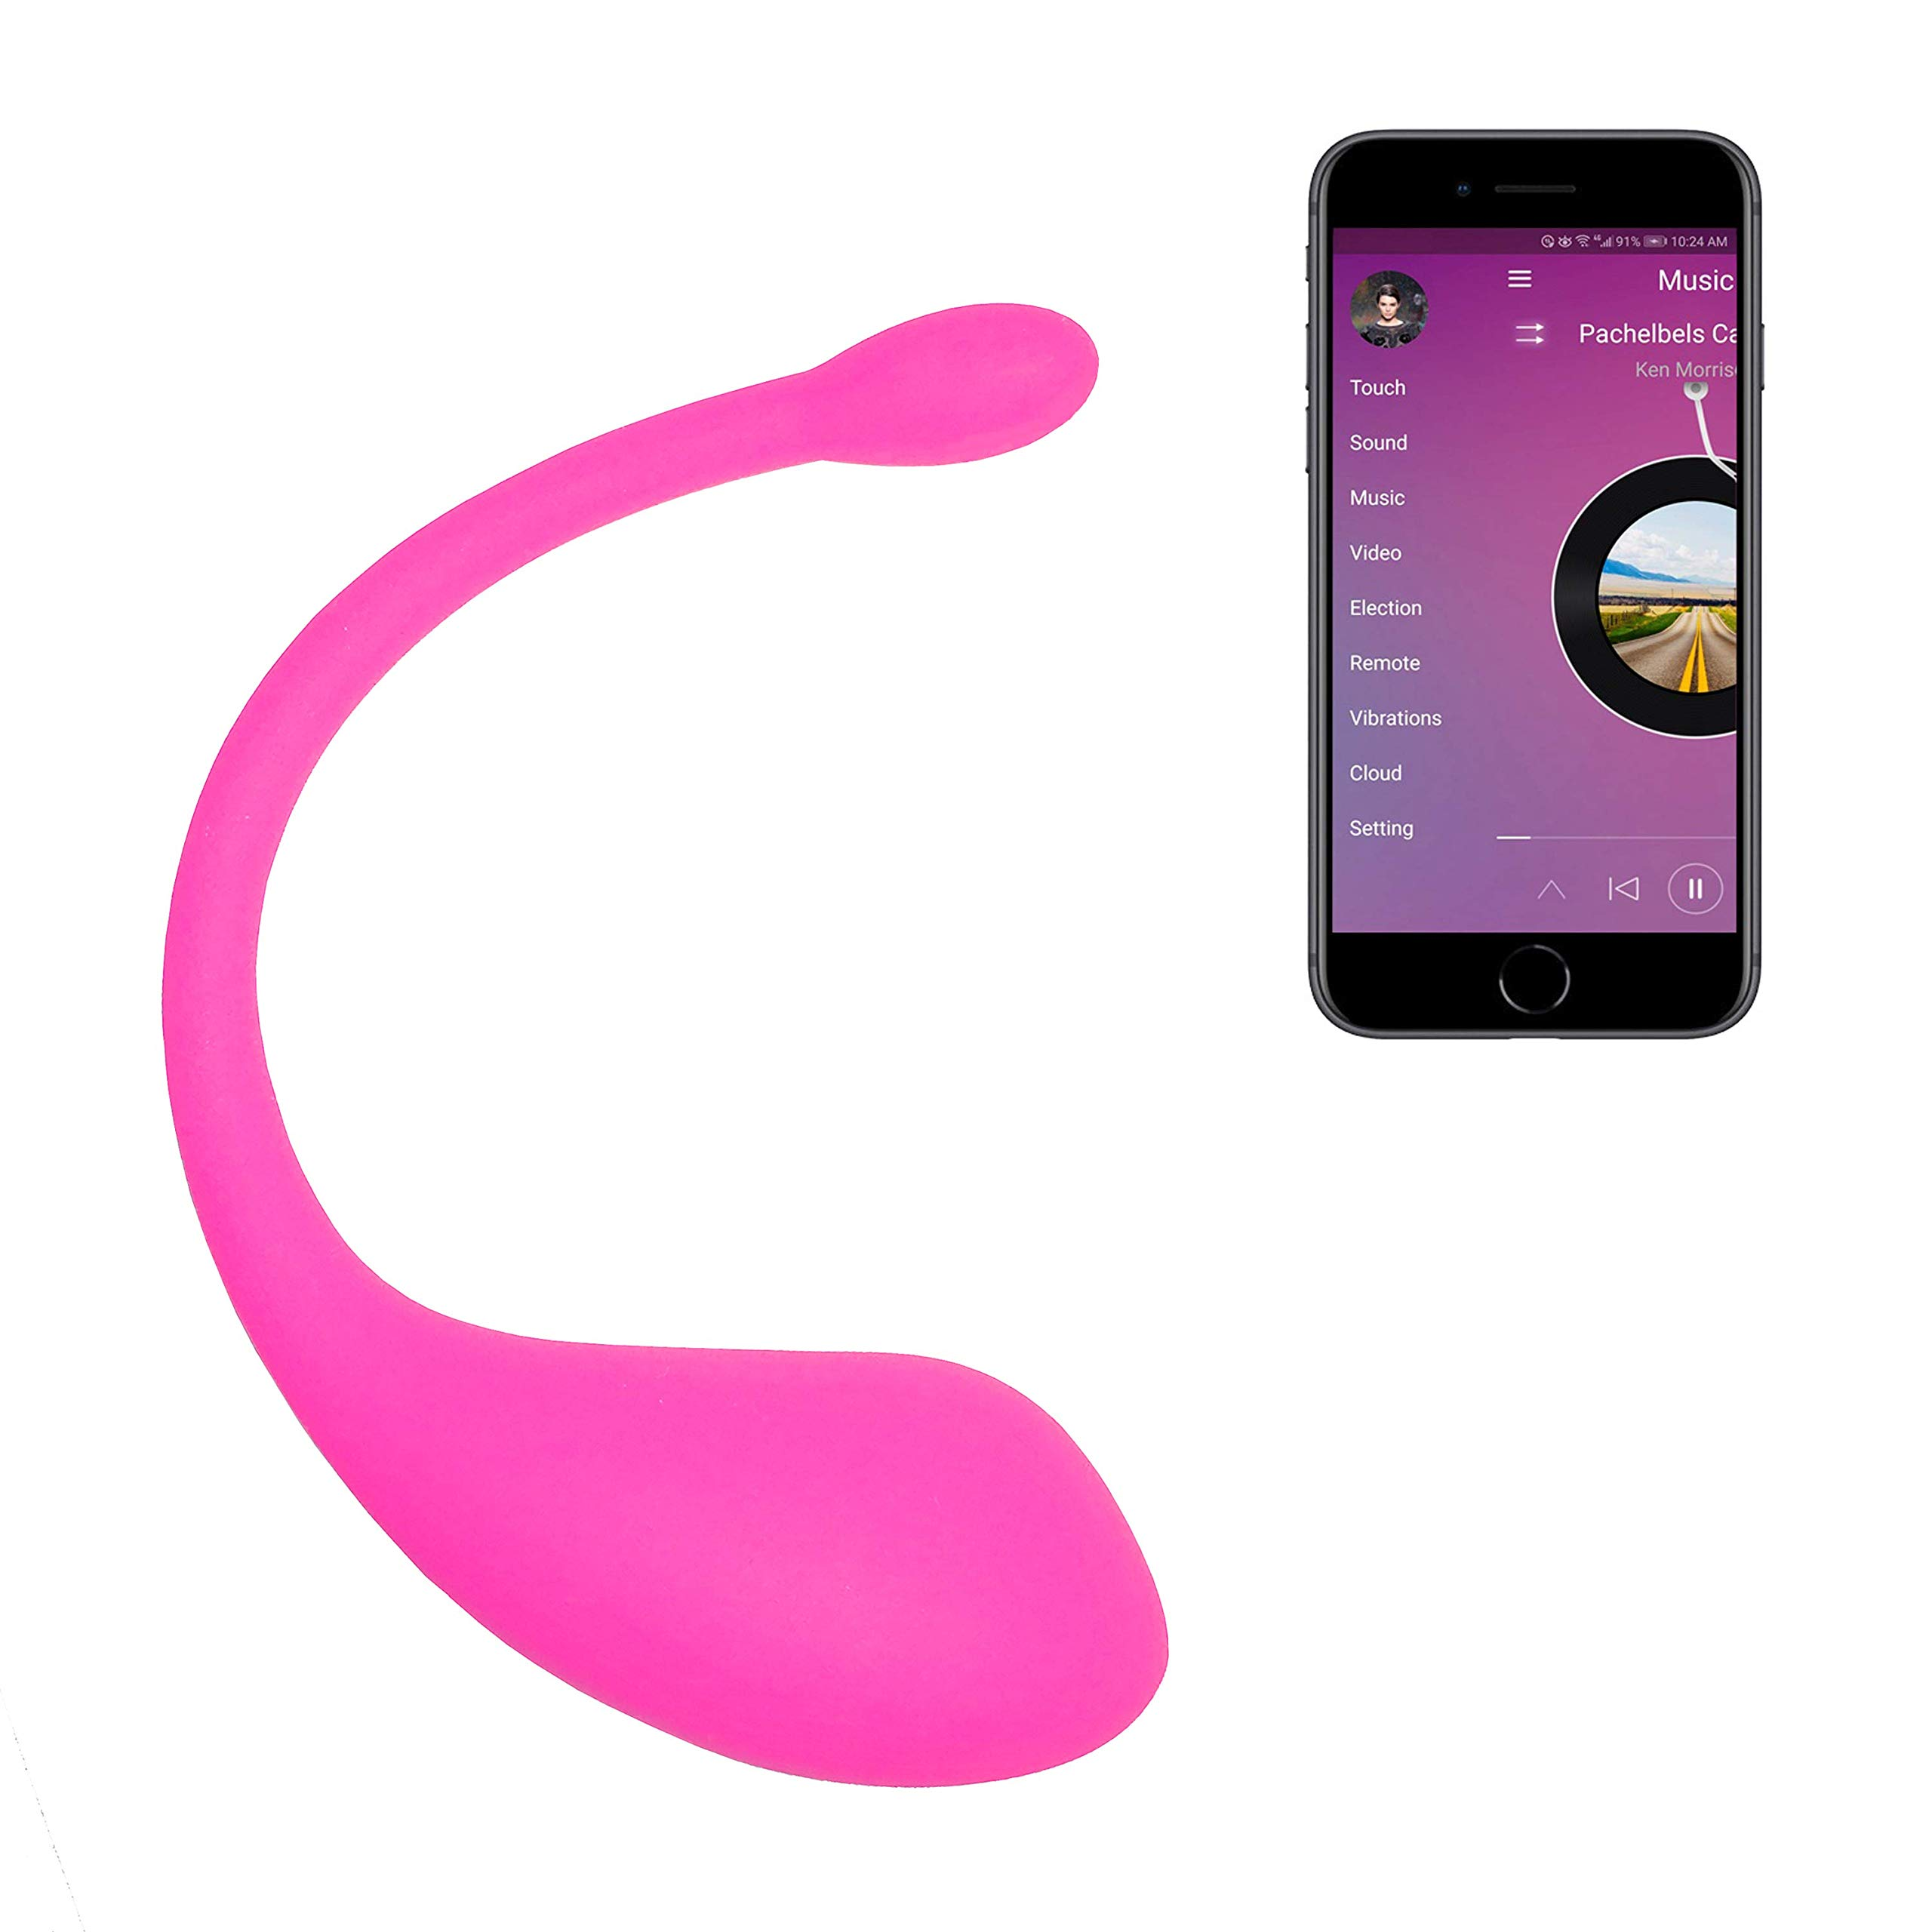 LOVEAI Wearable Vibes, Smart App Bluetooth Remote Control Waterproof Massager